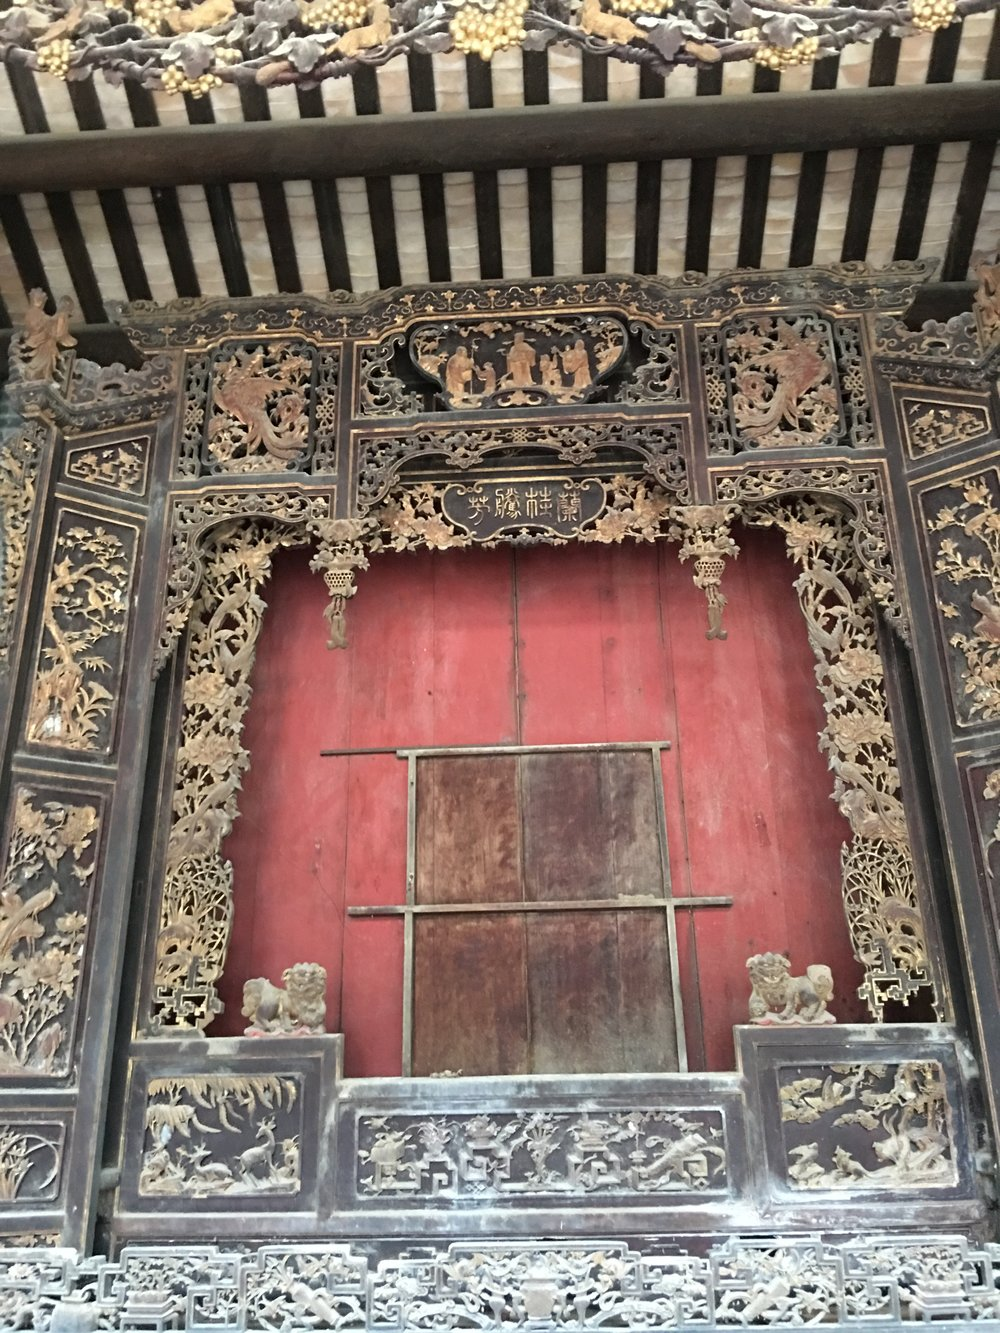 Shrine in Guangdong. Author's own photograph.